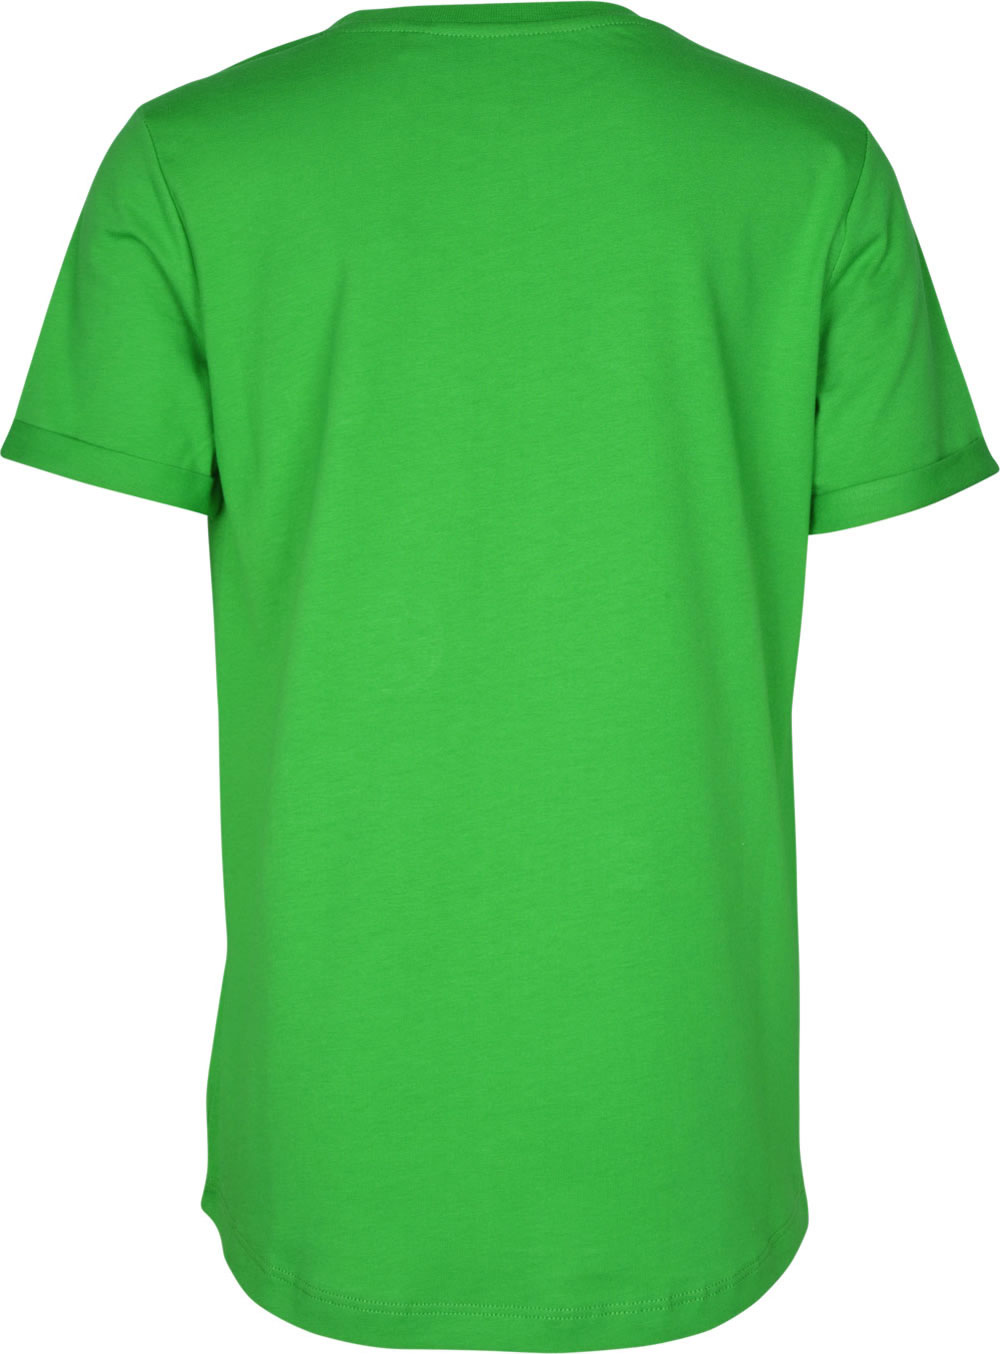 reputable site 3a9ef c8be4 Marc O'Polo T-Shirt short sleeve Kids fern green 1814911-5450